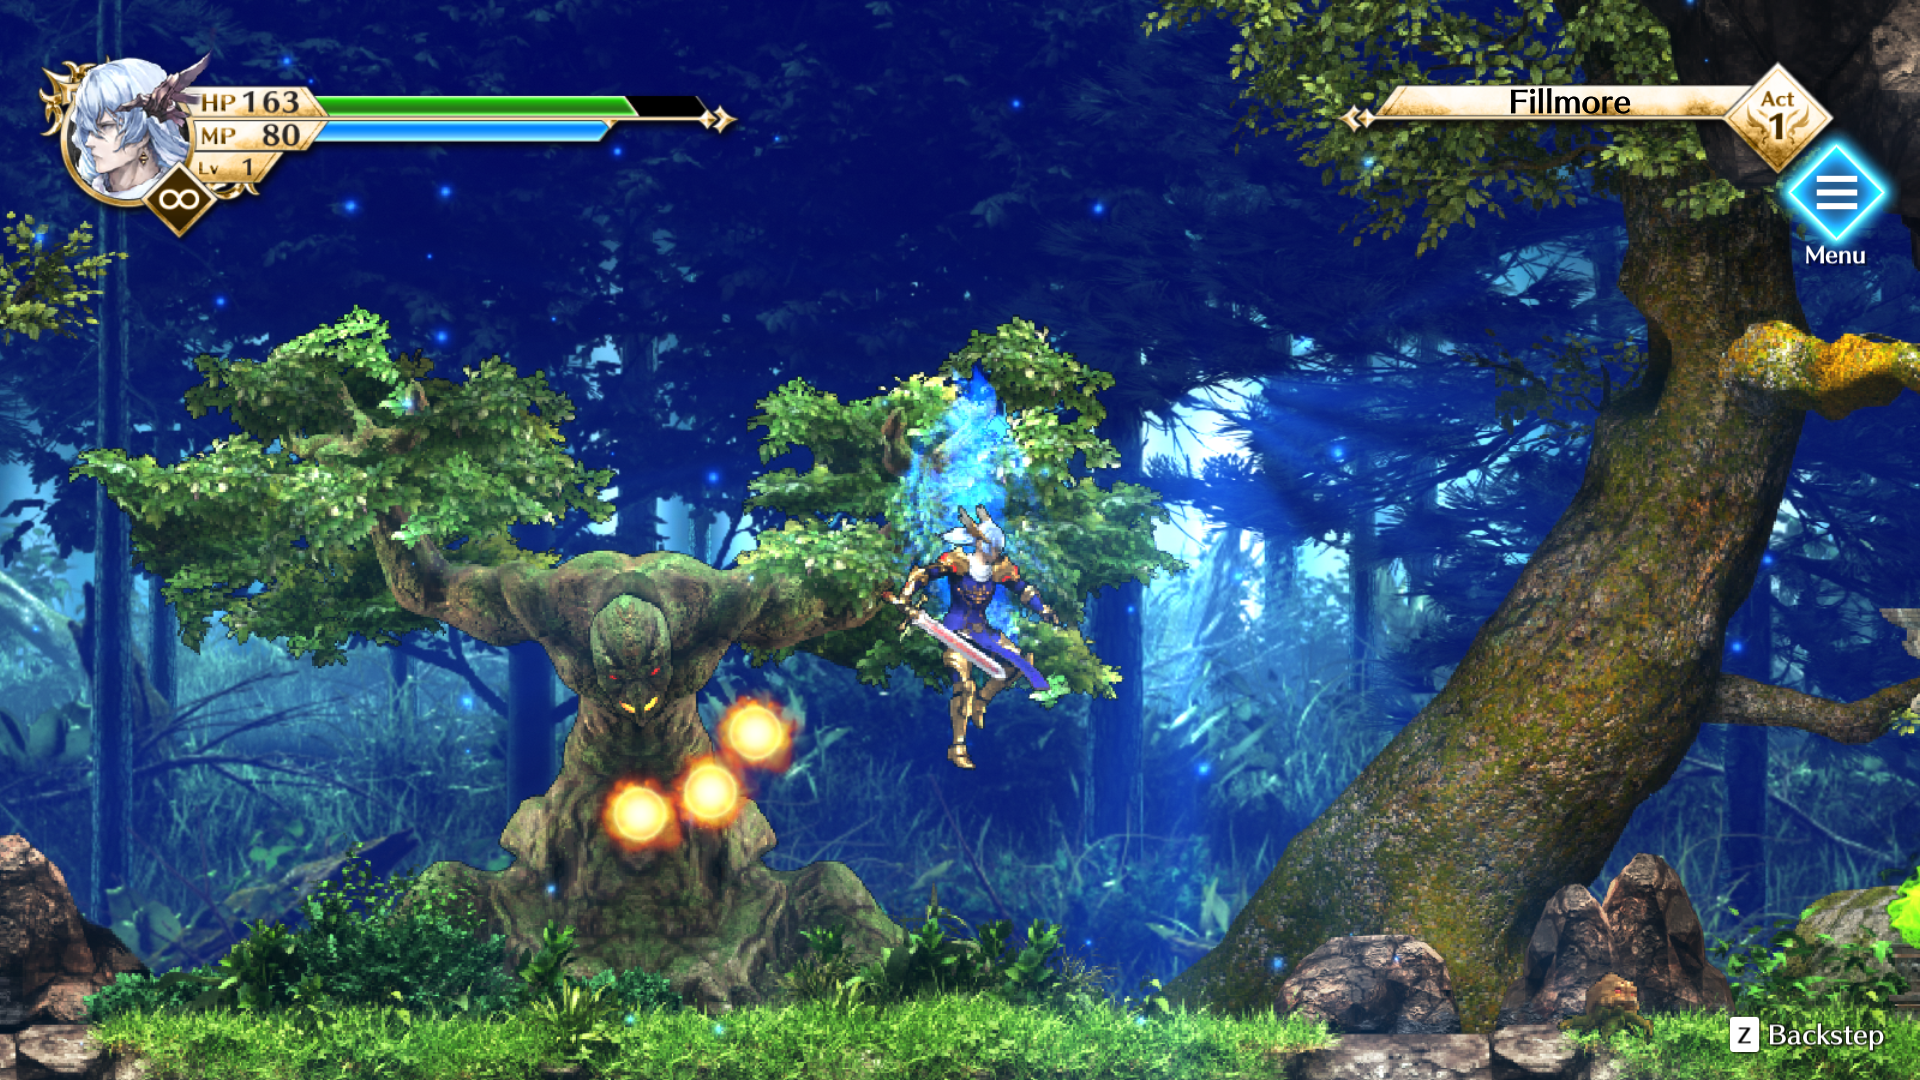 Gameplay screenshot of the Actraiser Renaissance protagonist in a battle against an enemy.